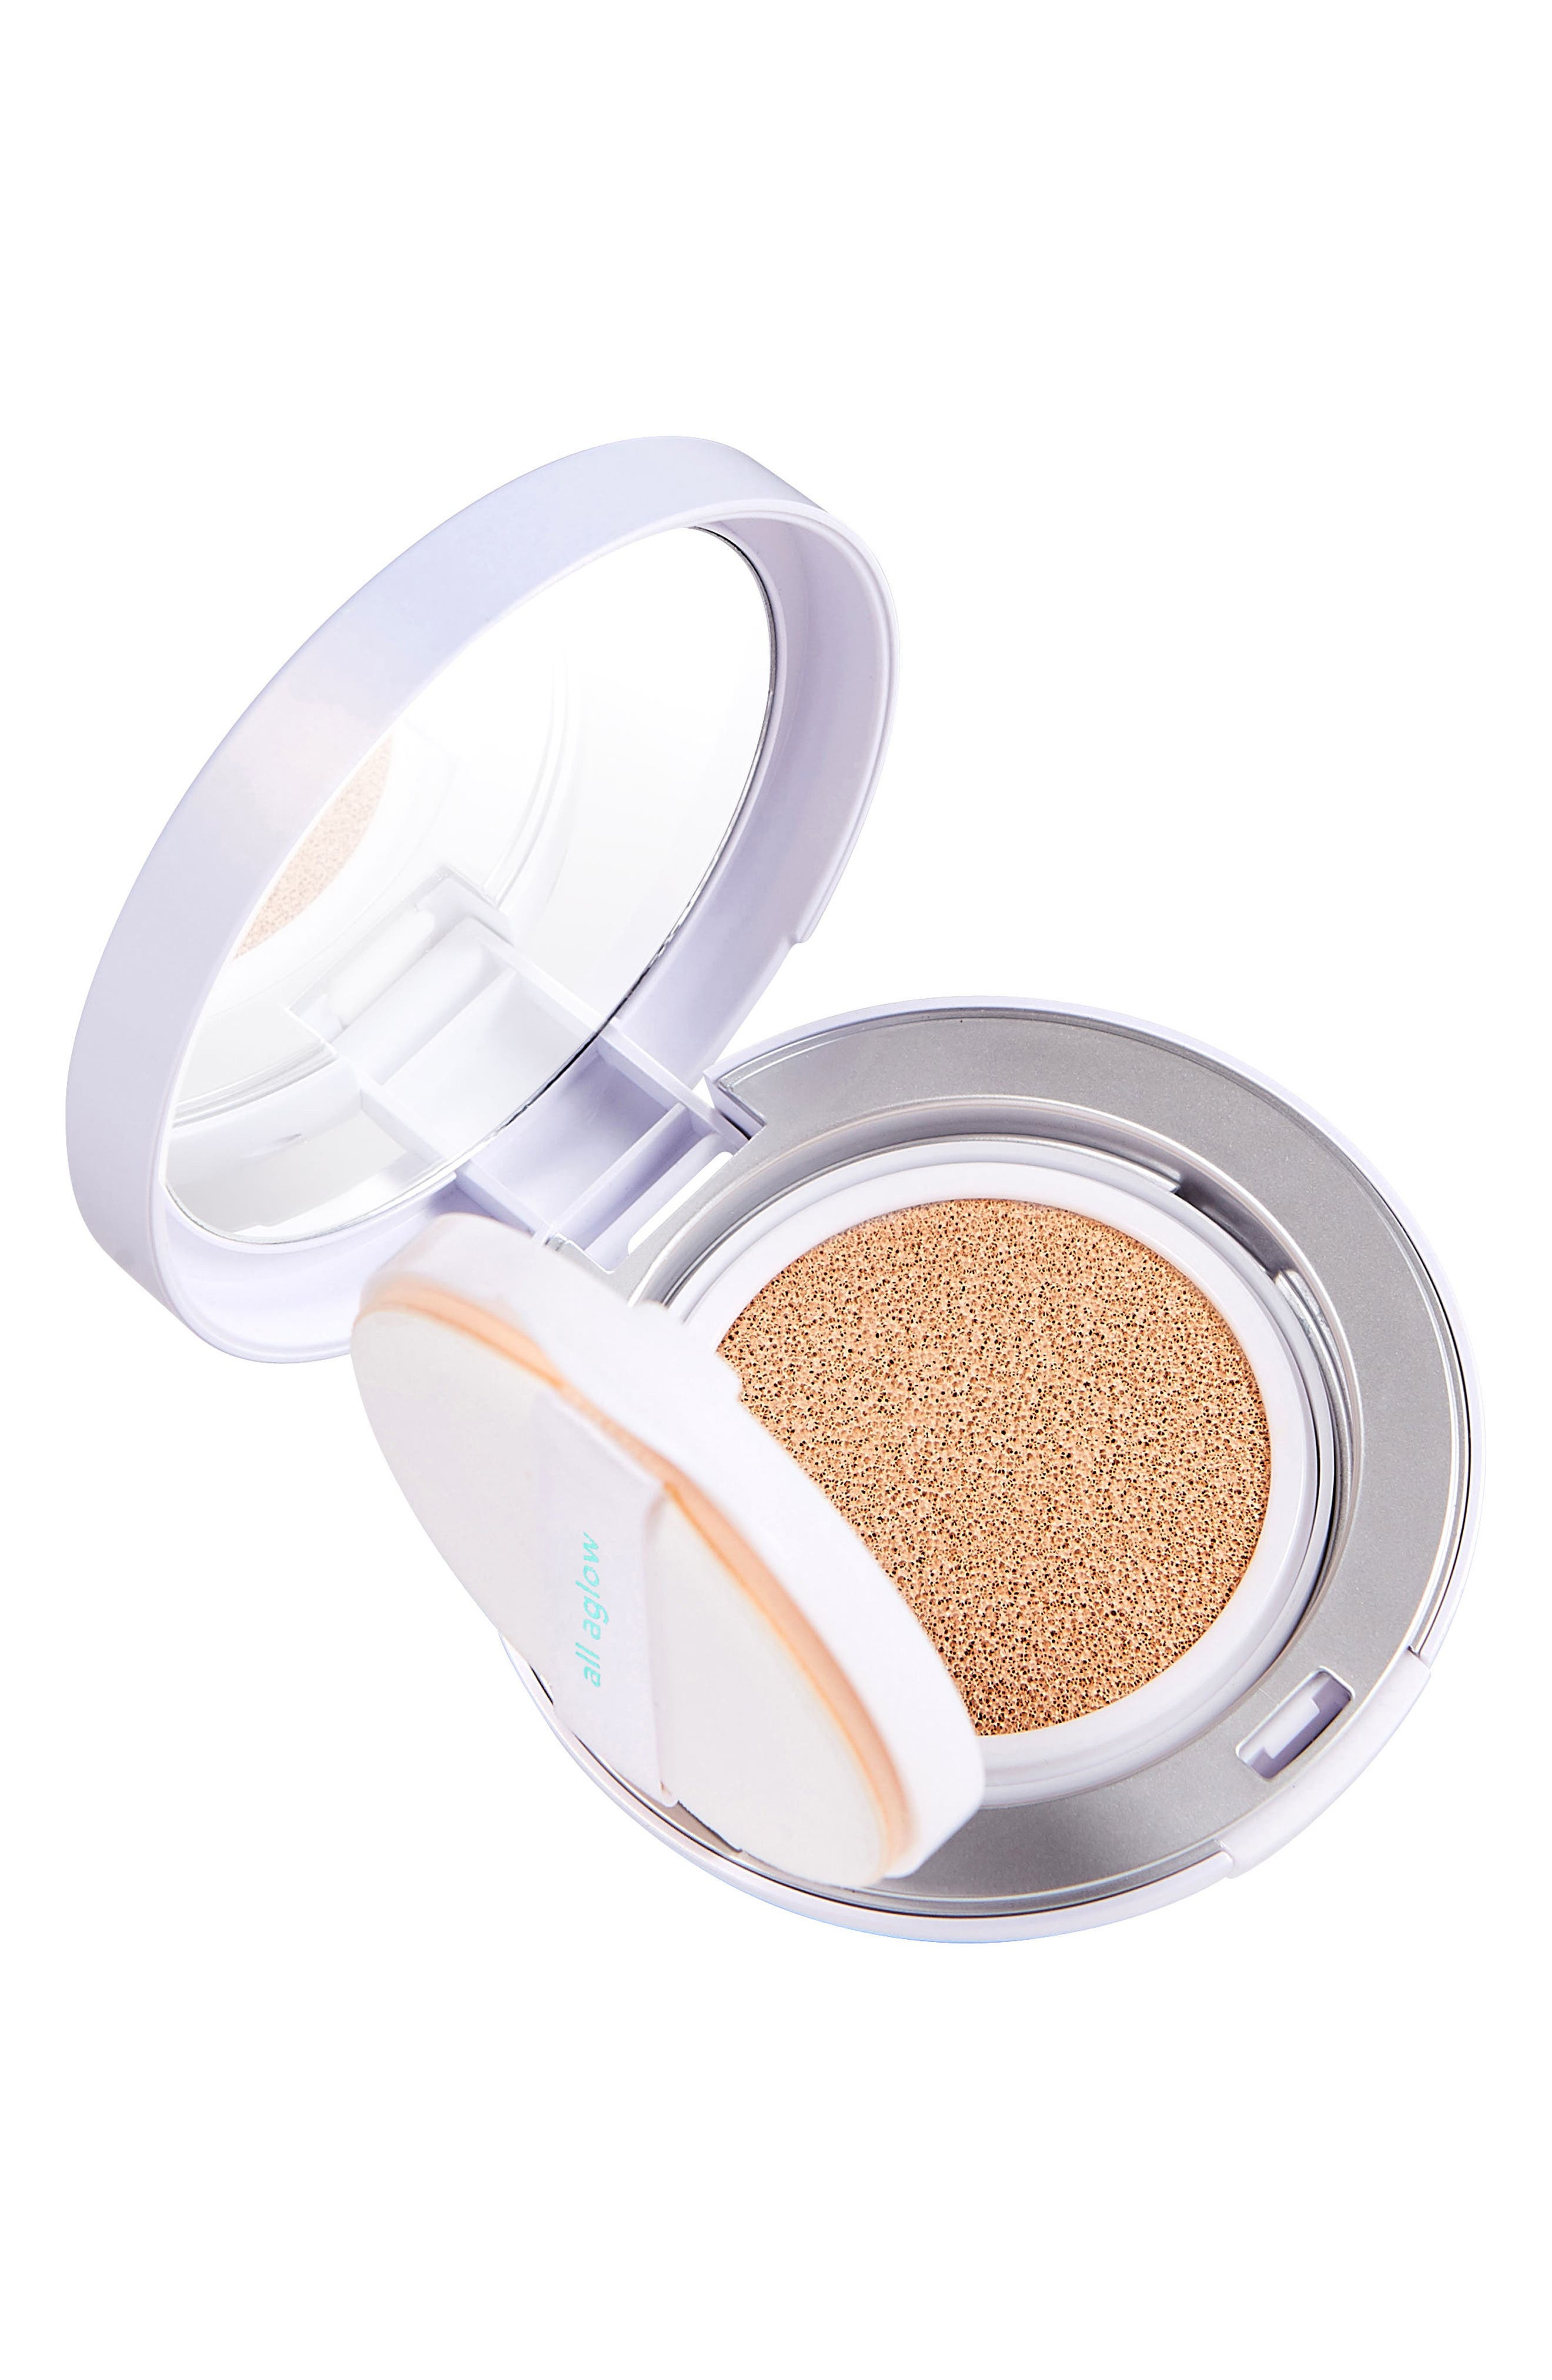 Alternate Image 5  - Saturday Skin All Aglow Sunscreen Perfection Cushion Compact SPF 50